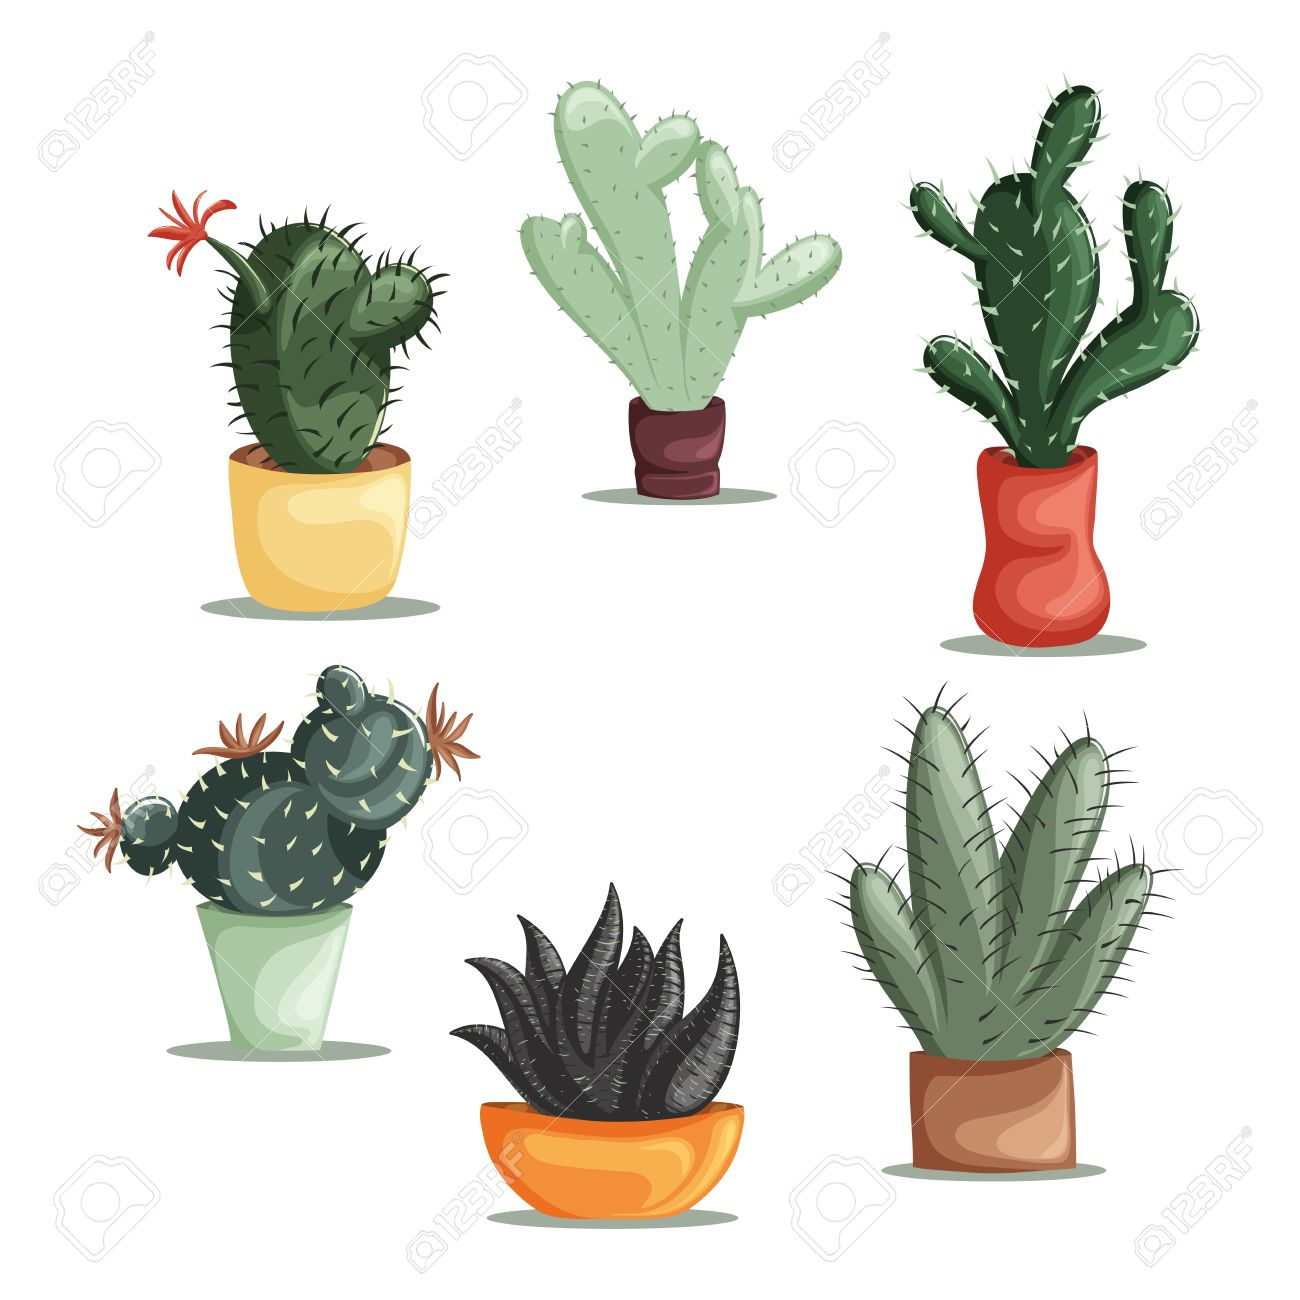 Colorful illustration of succulent plants and cactuses in pots. Vector botanical graphic set with cute florals. - 43922203